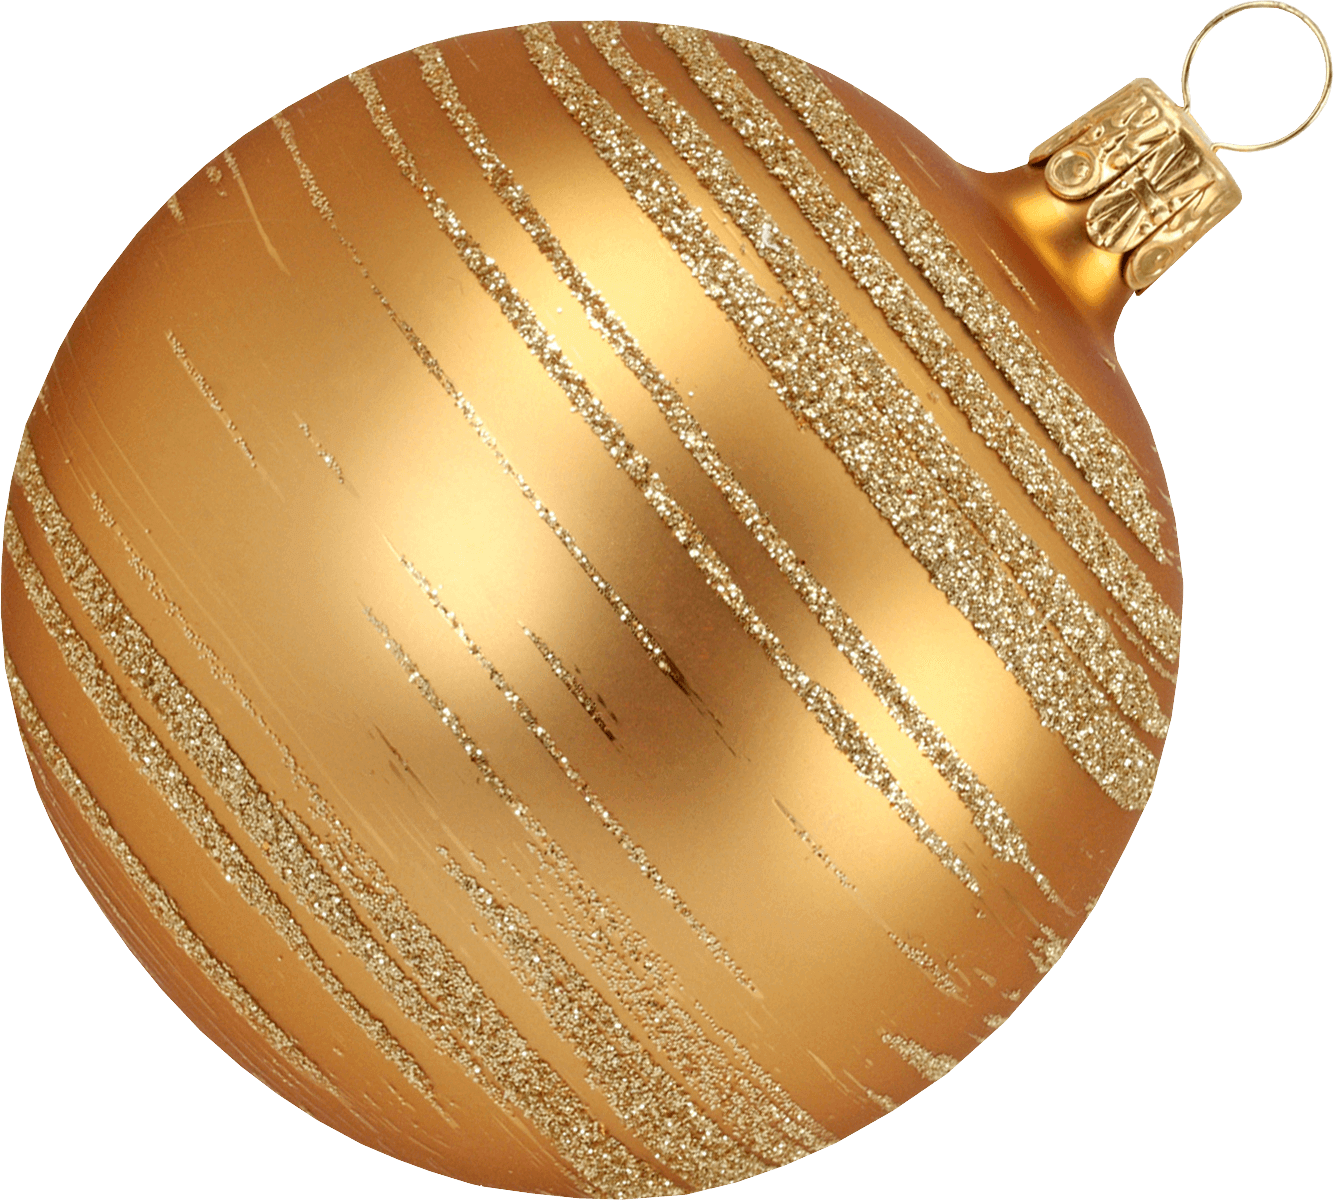 Gold Christmas Ornaments Png.Gold Christmas Balls Ornaments Png Picture 529938 Gold